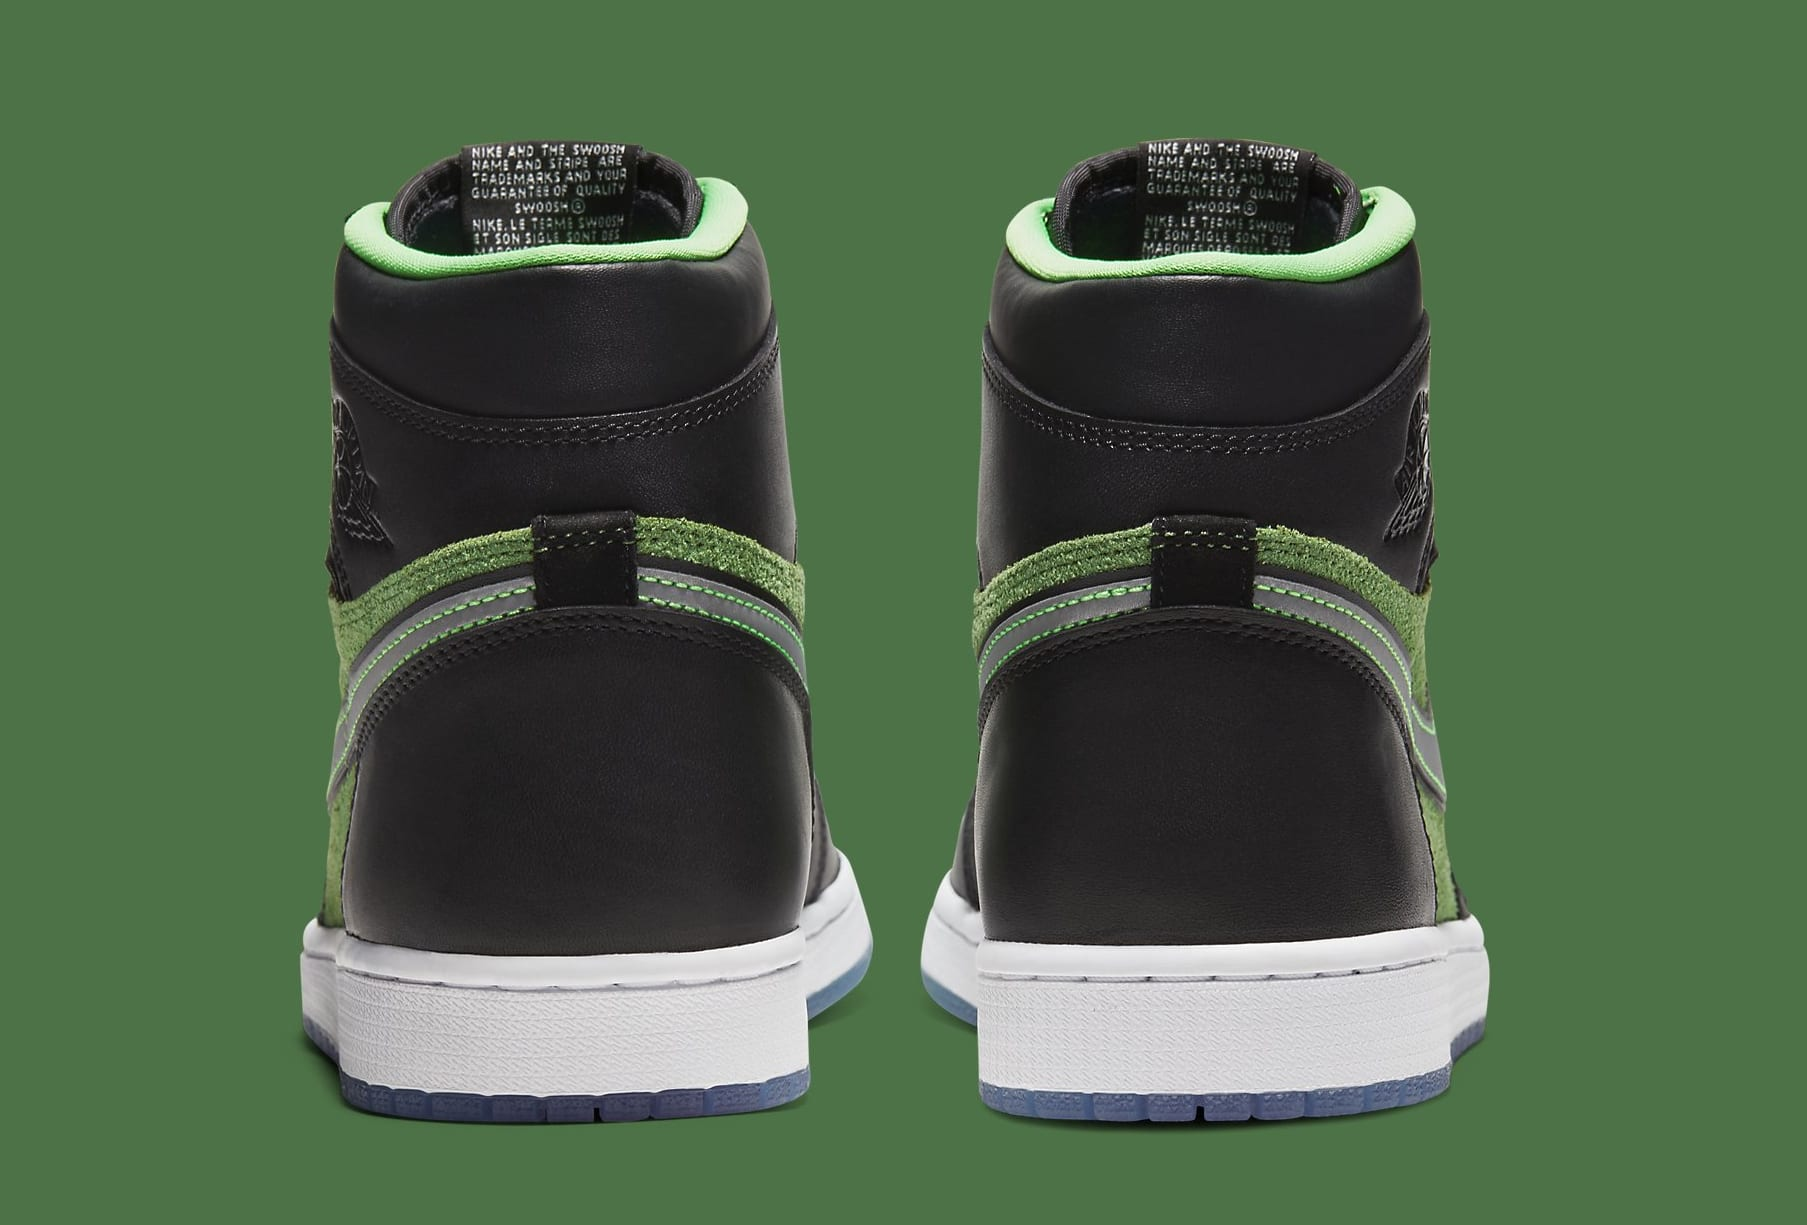 Air Jordan 1 High Zoom 'Rage Green' CK6637-002 Heel